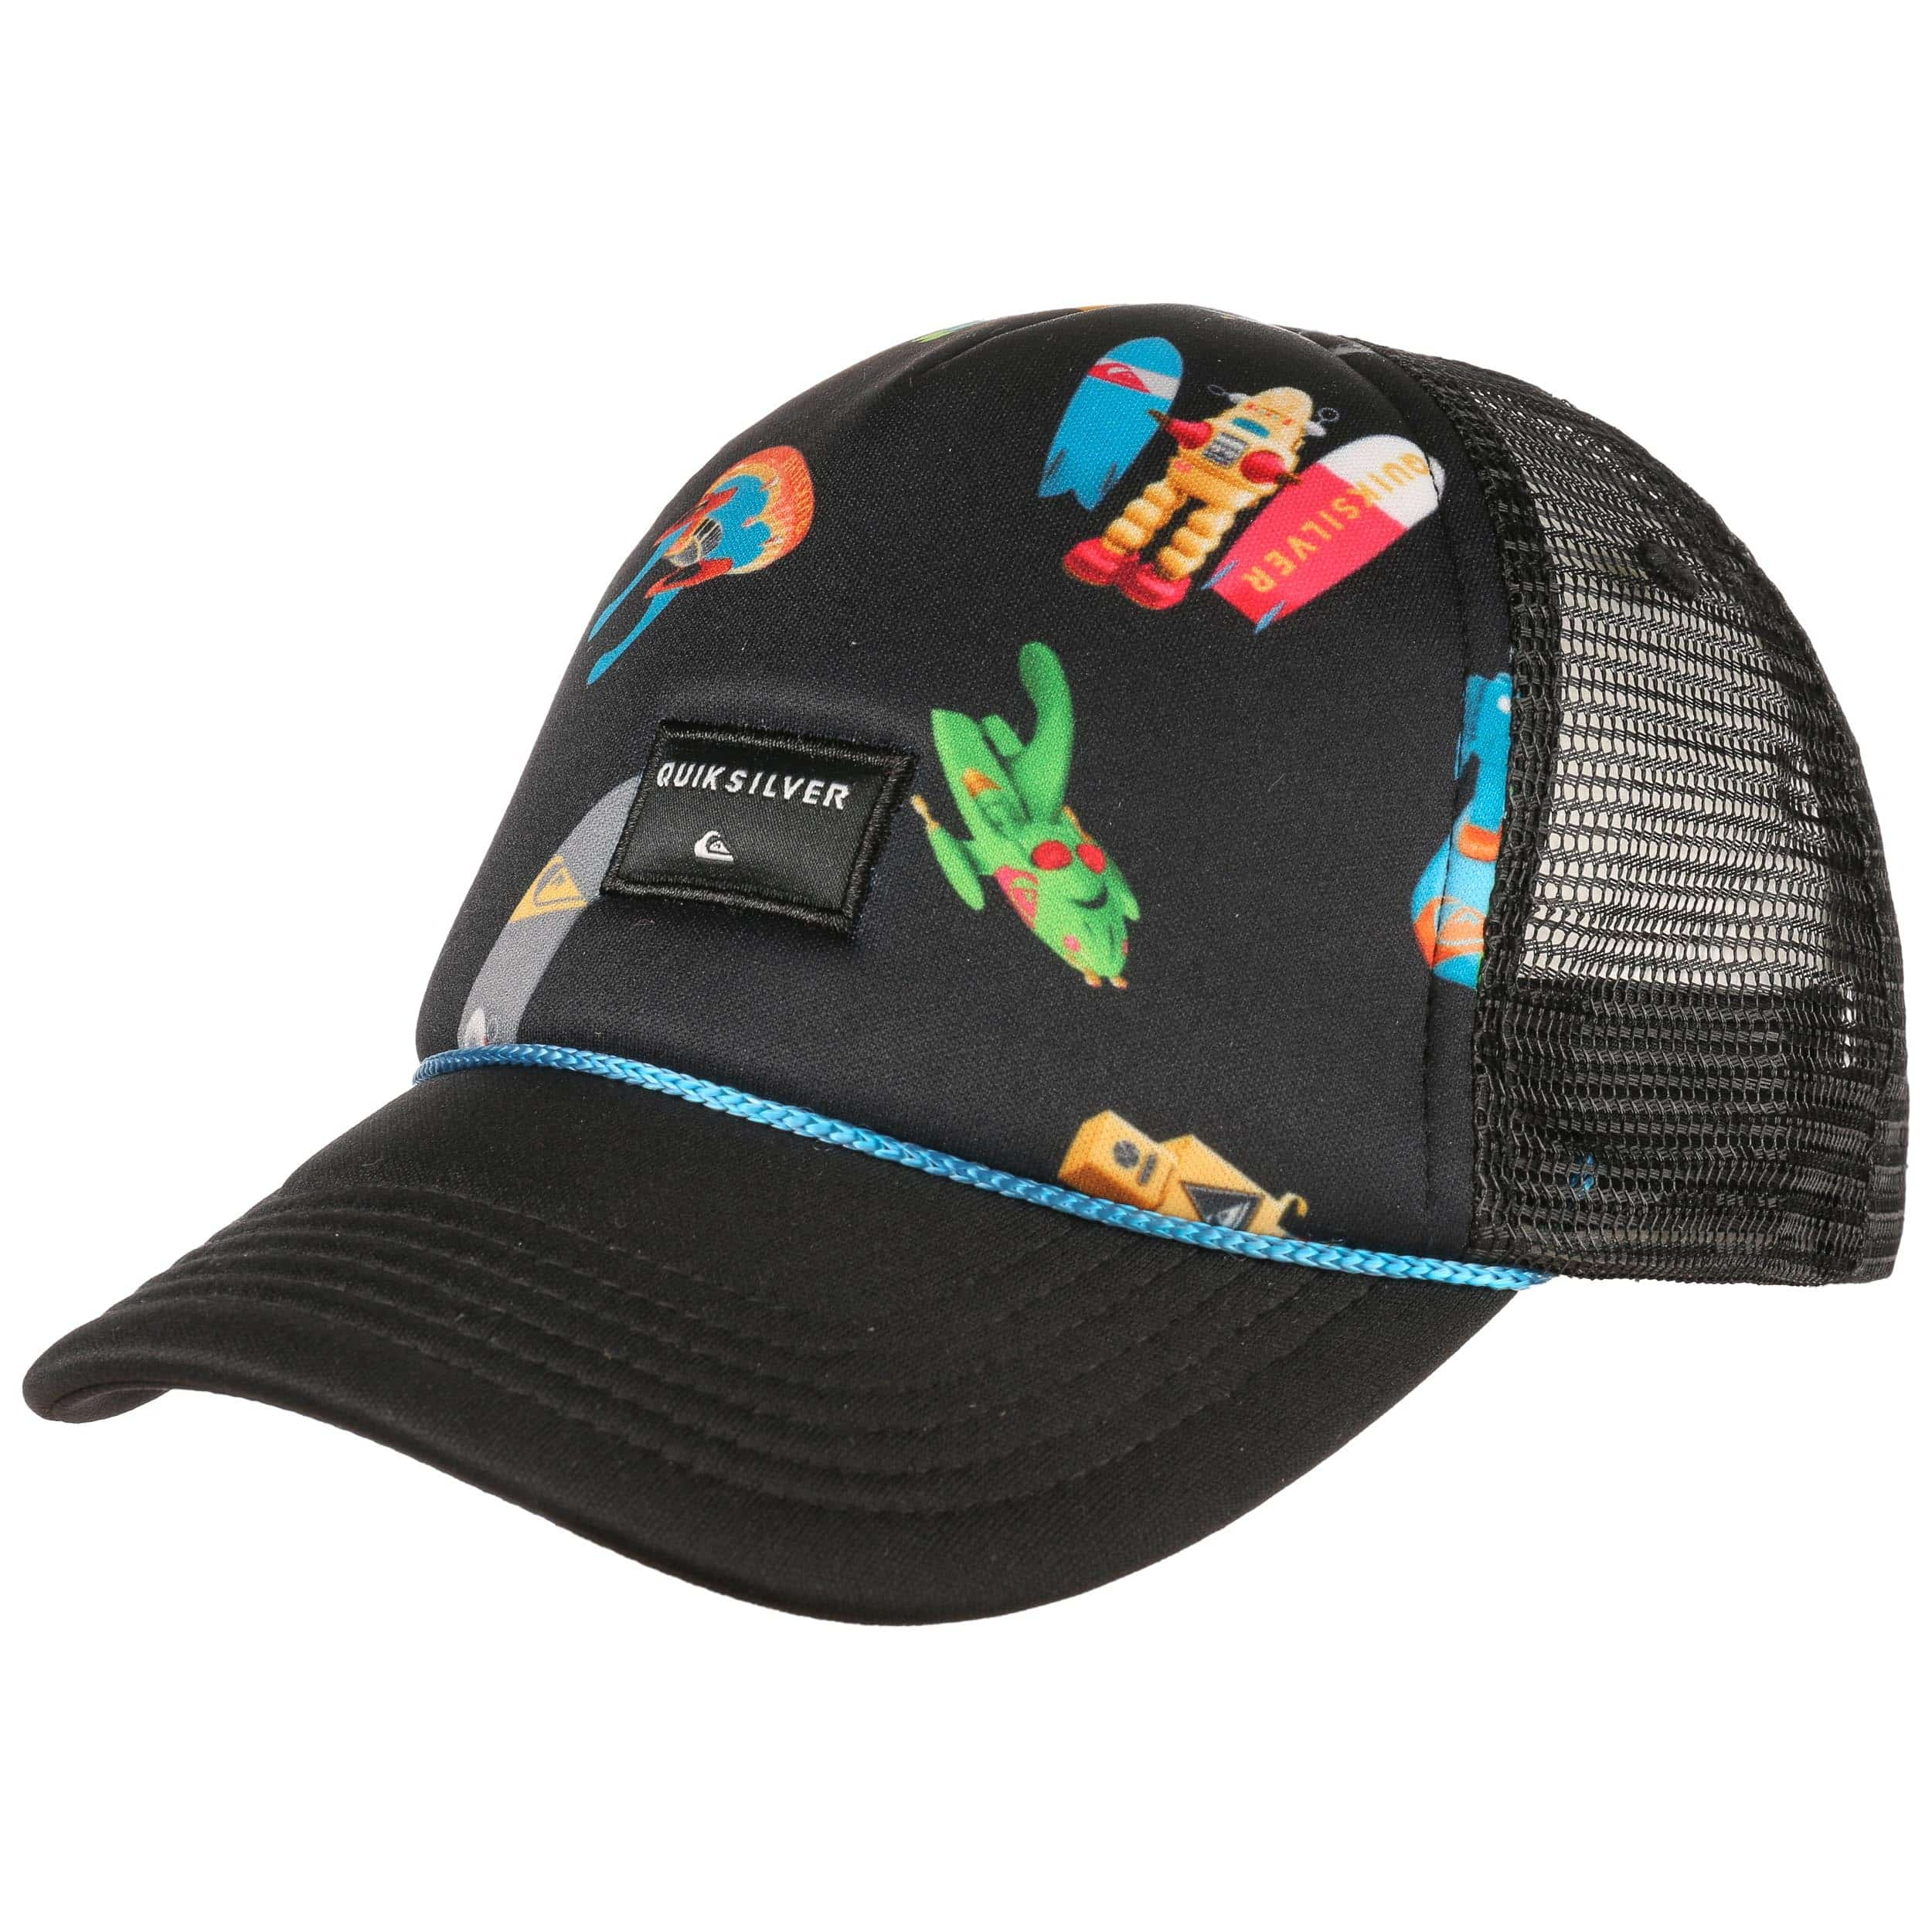 d08fc336db22 Submarin Baby Trucker Cap by Quiksilver, GBP 14,95 --  Hats, caps ...